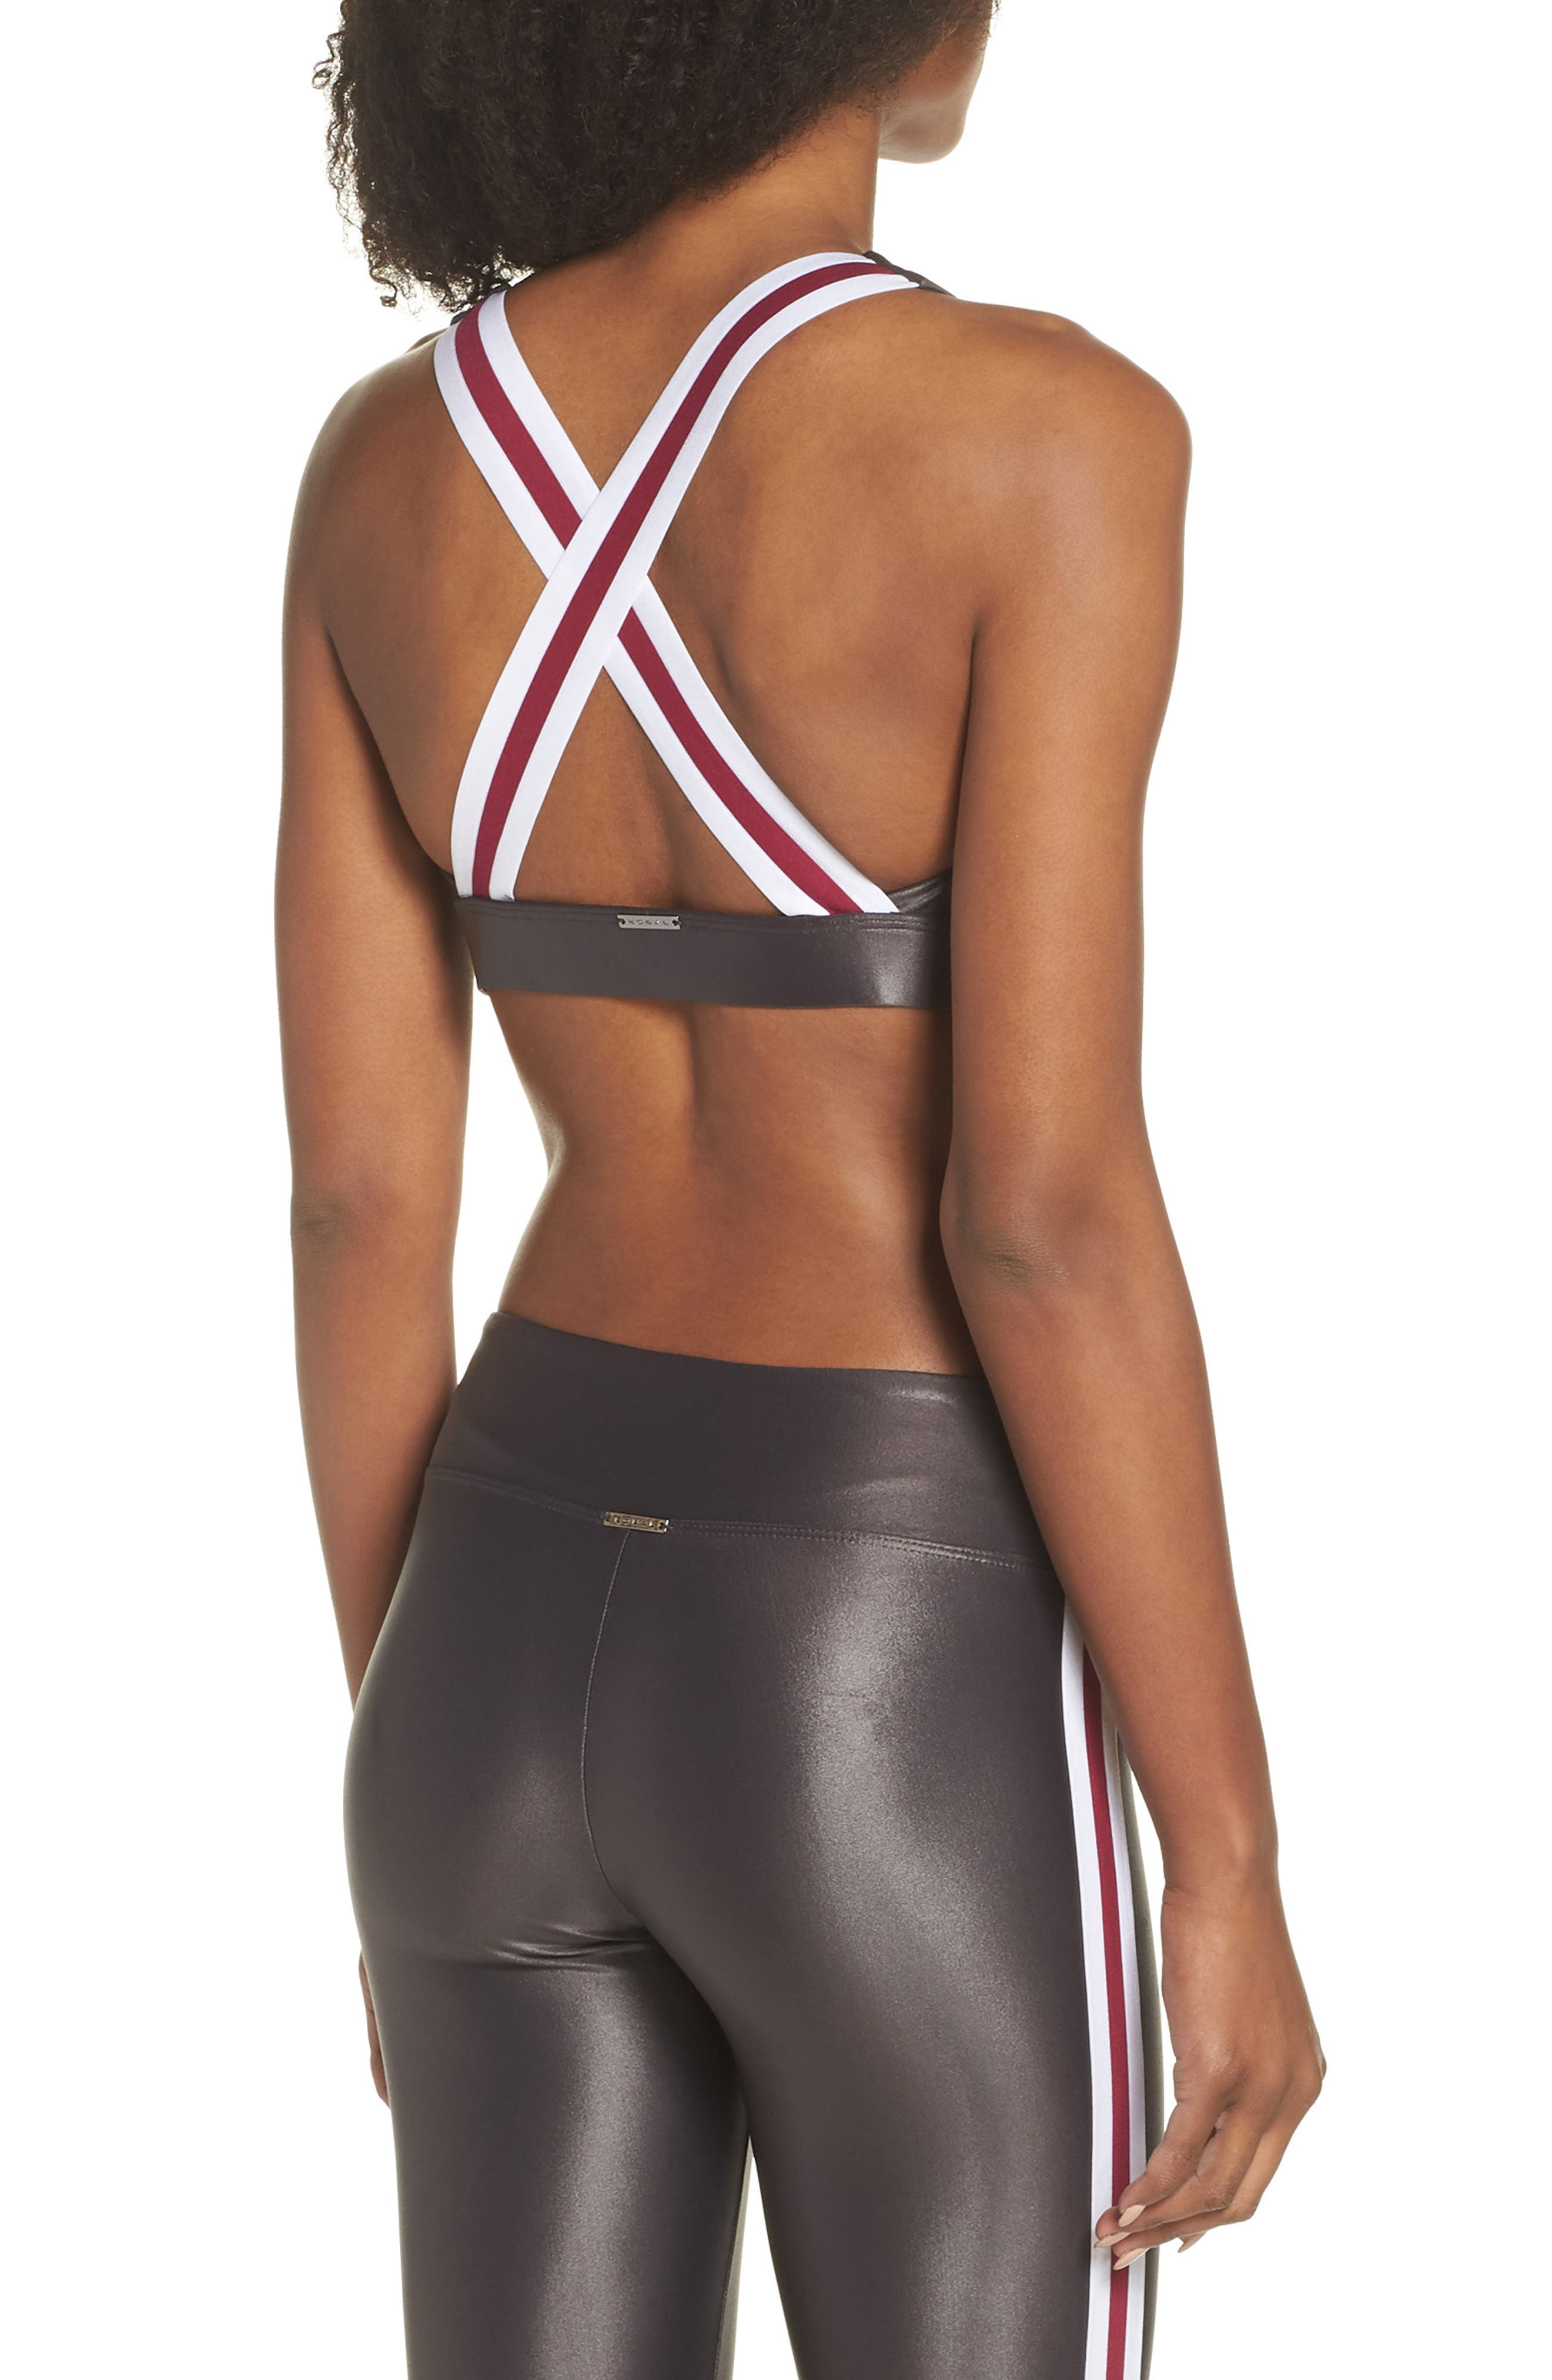 Fame Sports Bra,                             Alternate thumbnail 2, color,                             LEAD